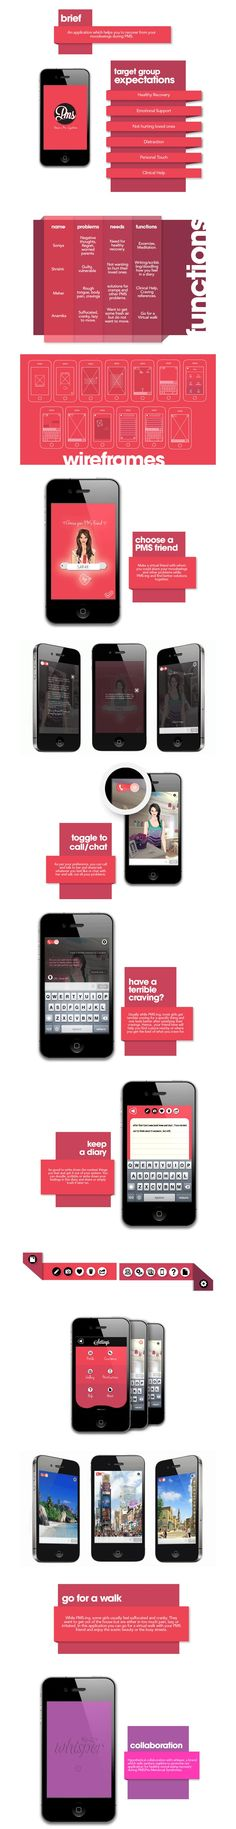 Daily Mobile UI Design Inspiration #48